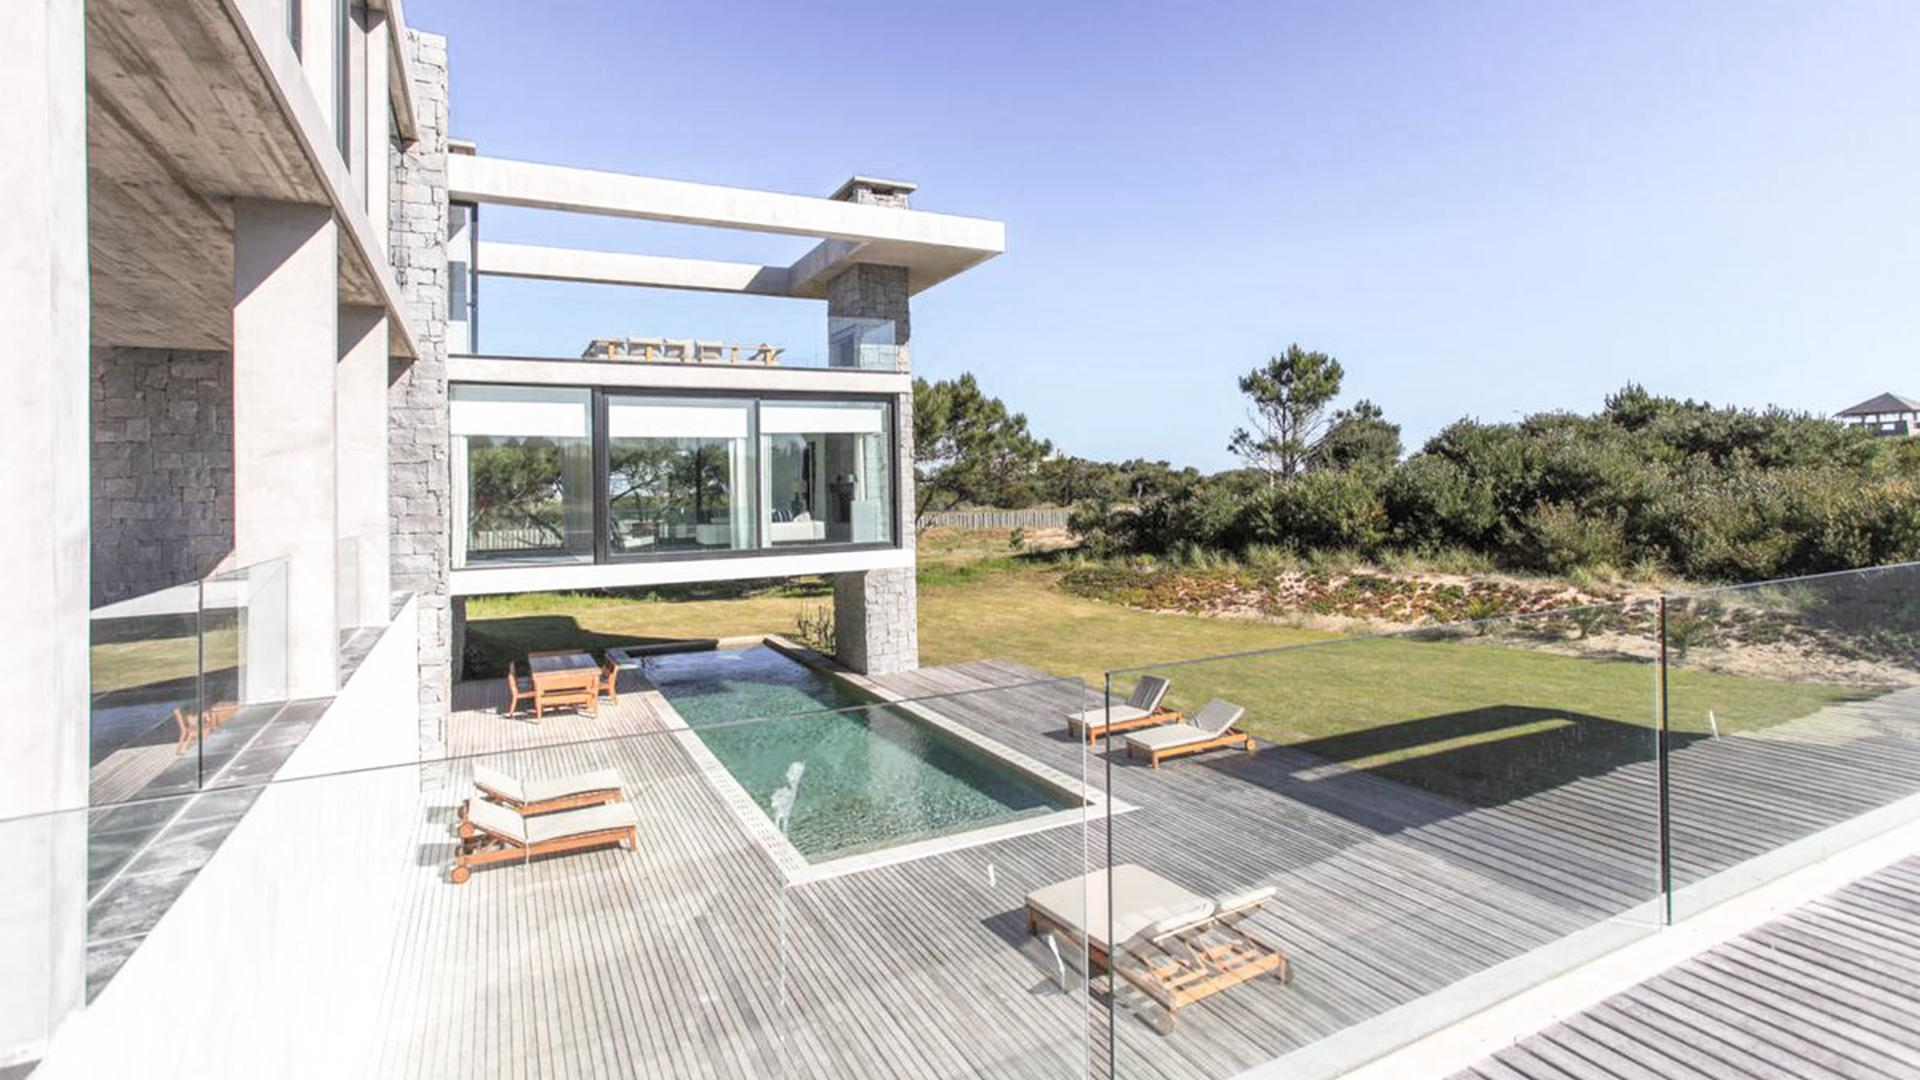 Luxury Ocean-View Villa in Private Neighborhood  located in Jose Ignacio, Punta del Este, Uruguay, listed by Curiocity Villas.